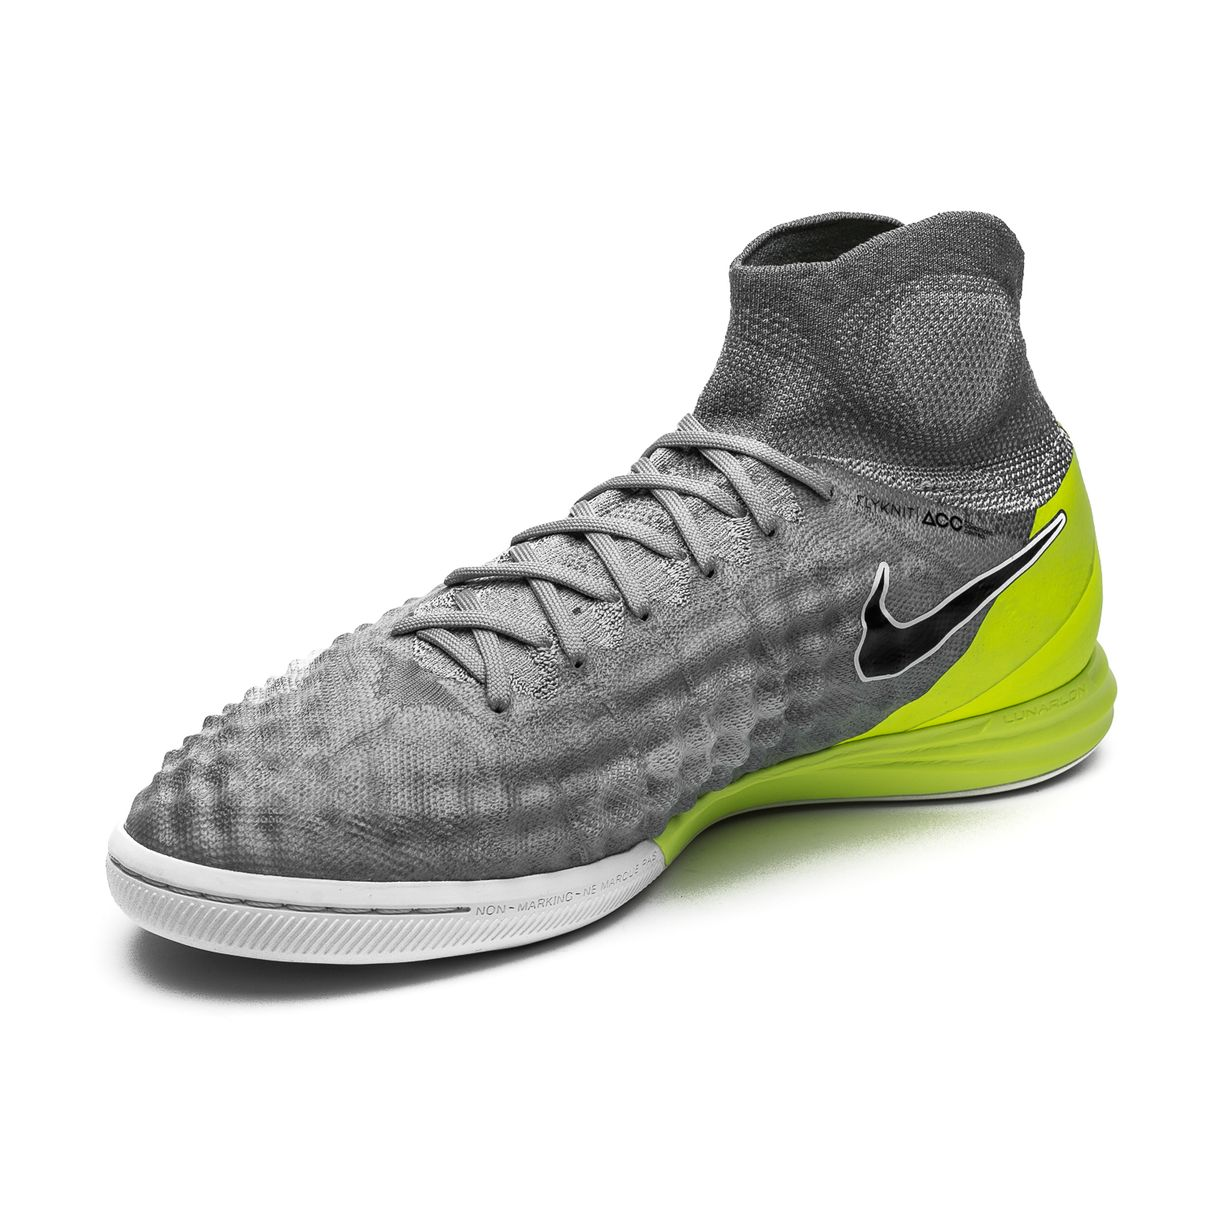 786bf5d519d0 ... Click to enlarge image  nike magistax proximo ii df ic motion blur wolf grey cool grey pure platinum black c.jpg  ...